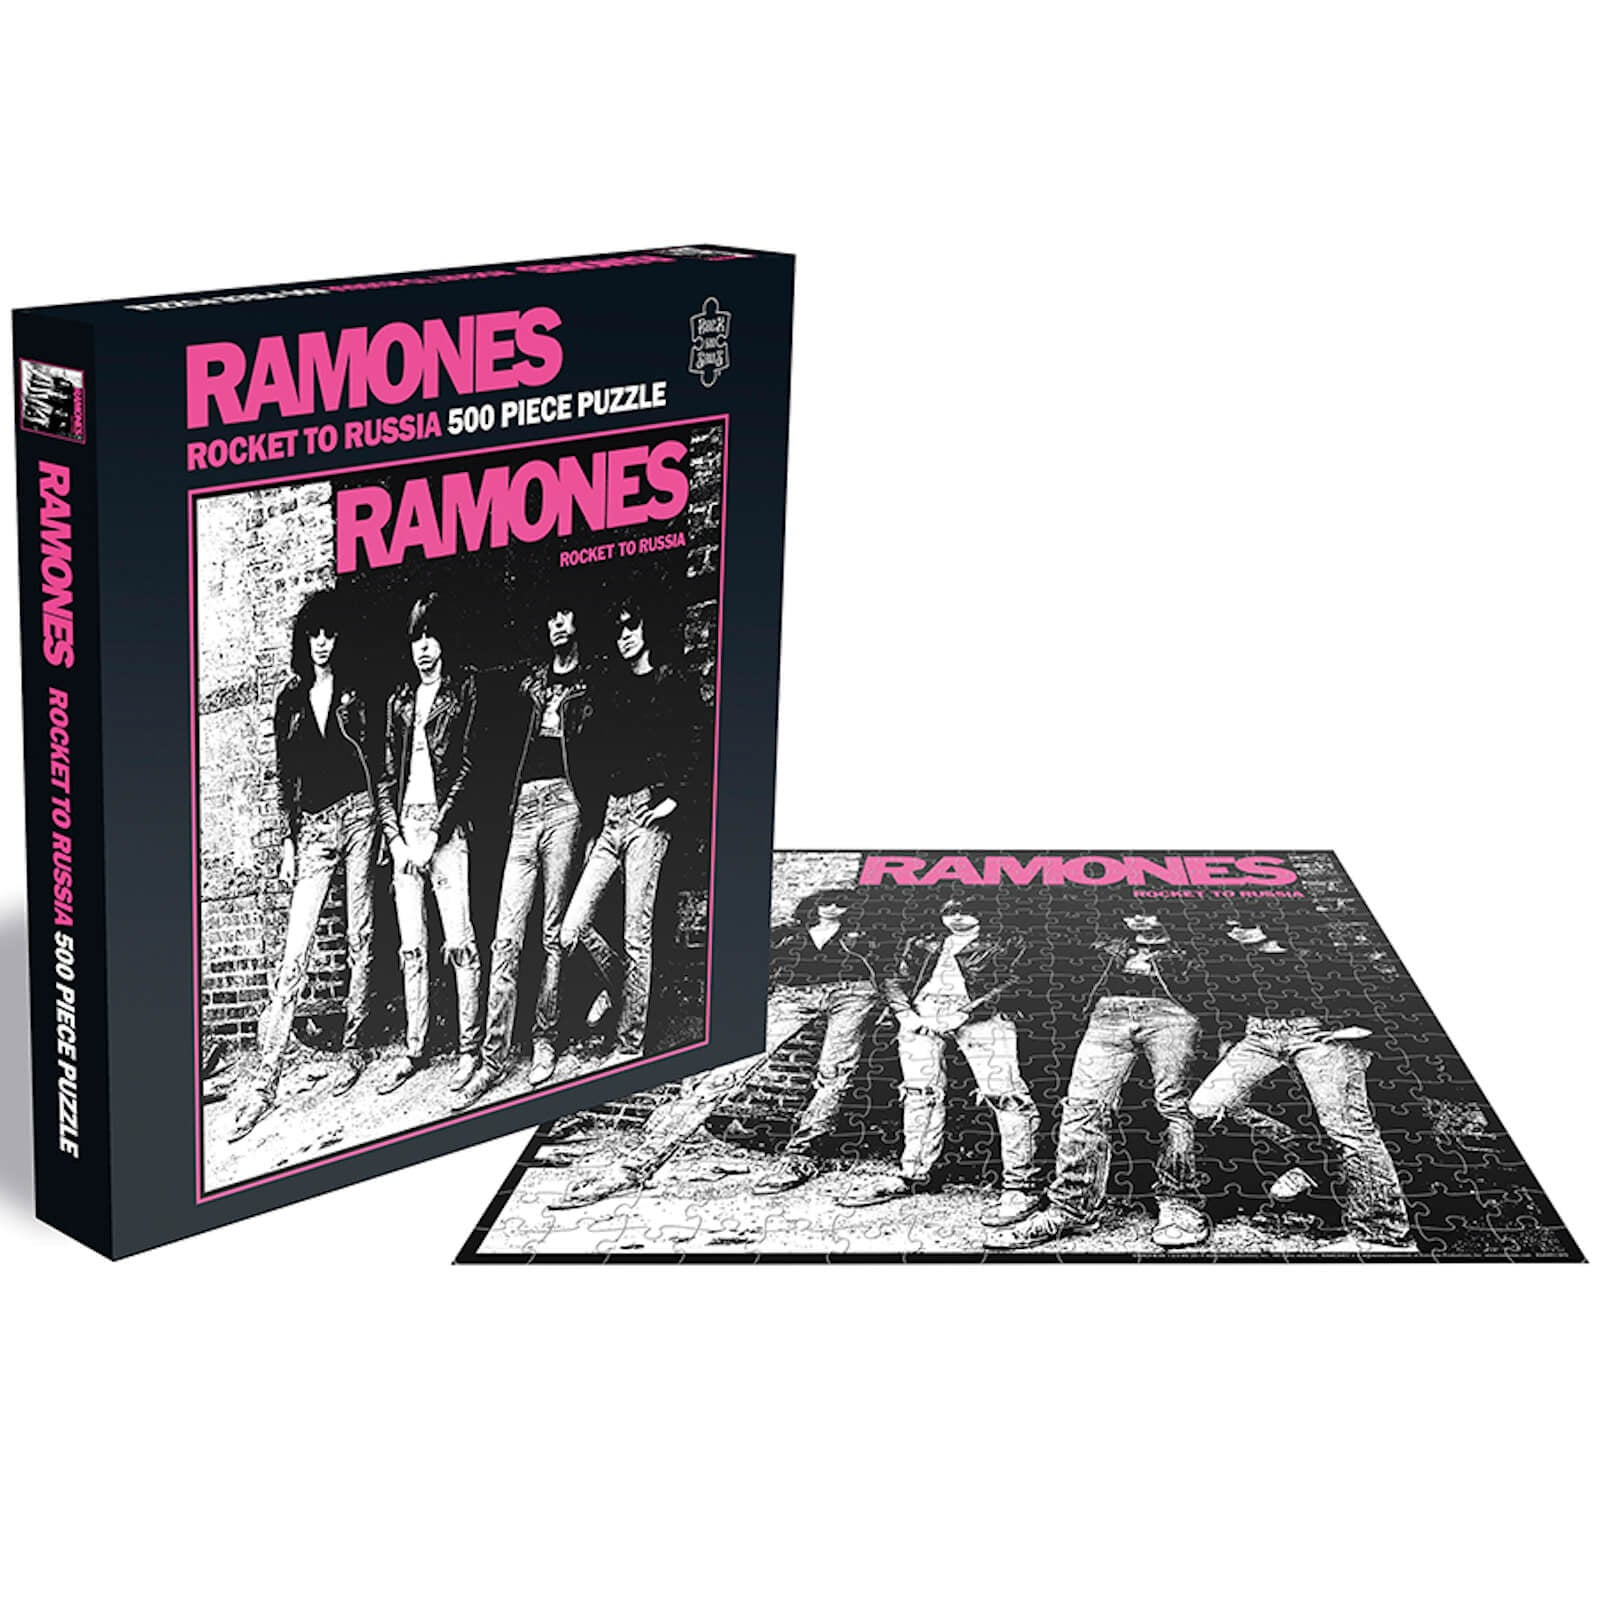 Ramones - Rocket To Russia - 500 Piece Jigsaw Puzzle